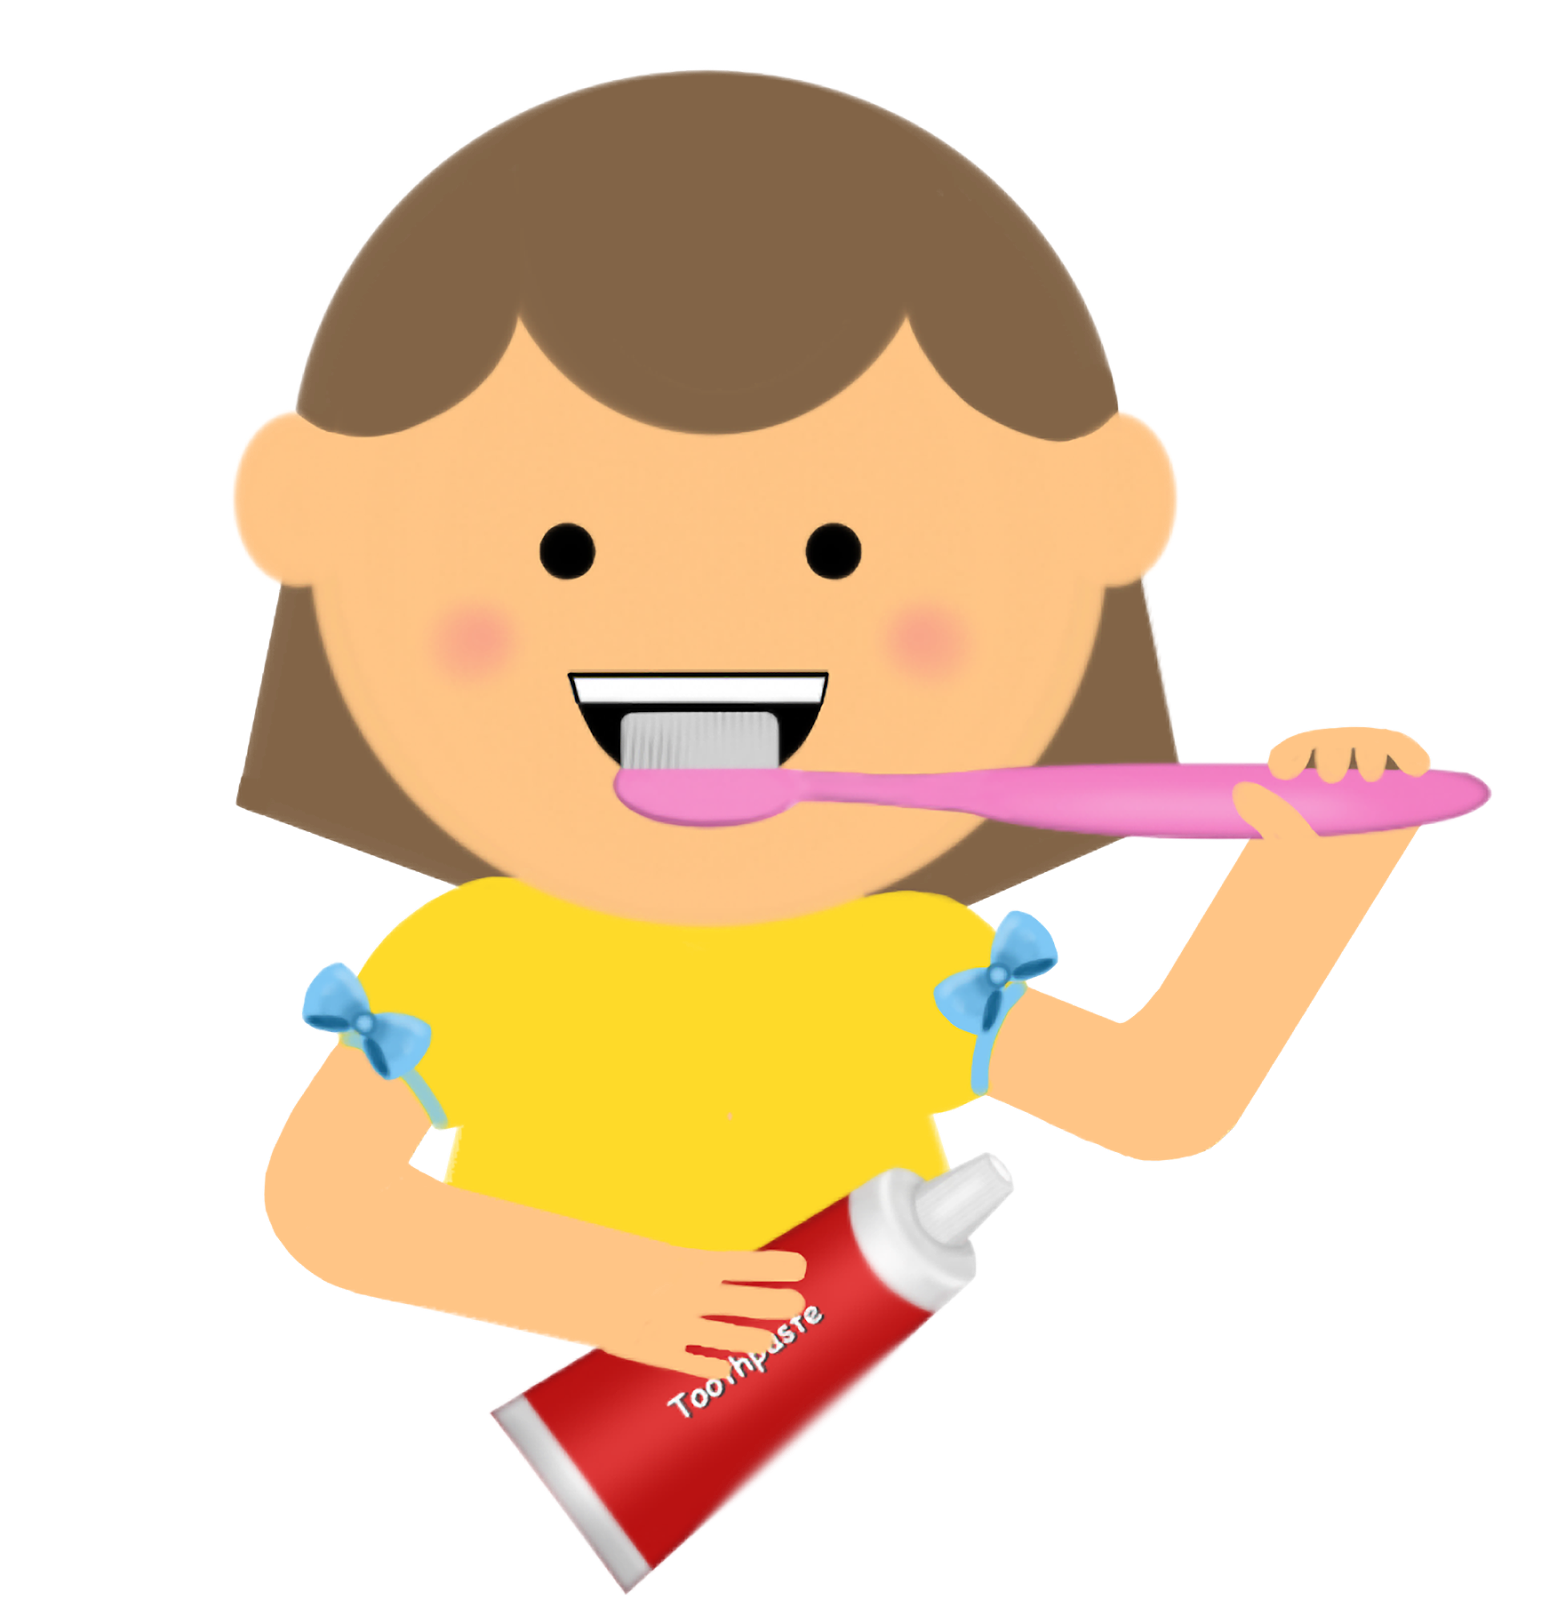 clip art Brushing clipart brushteeth. Brush teeth logo more.